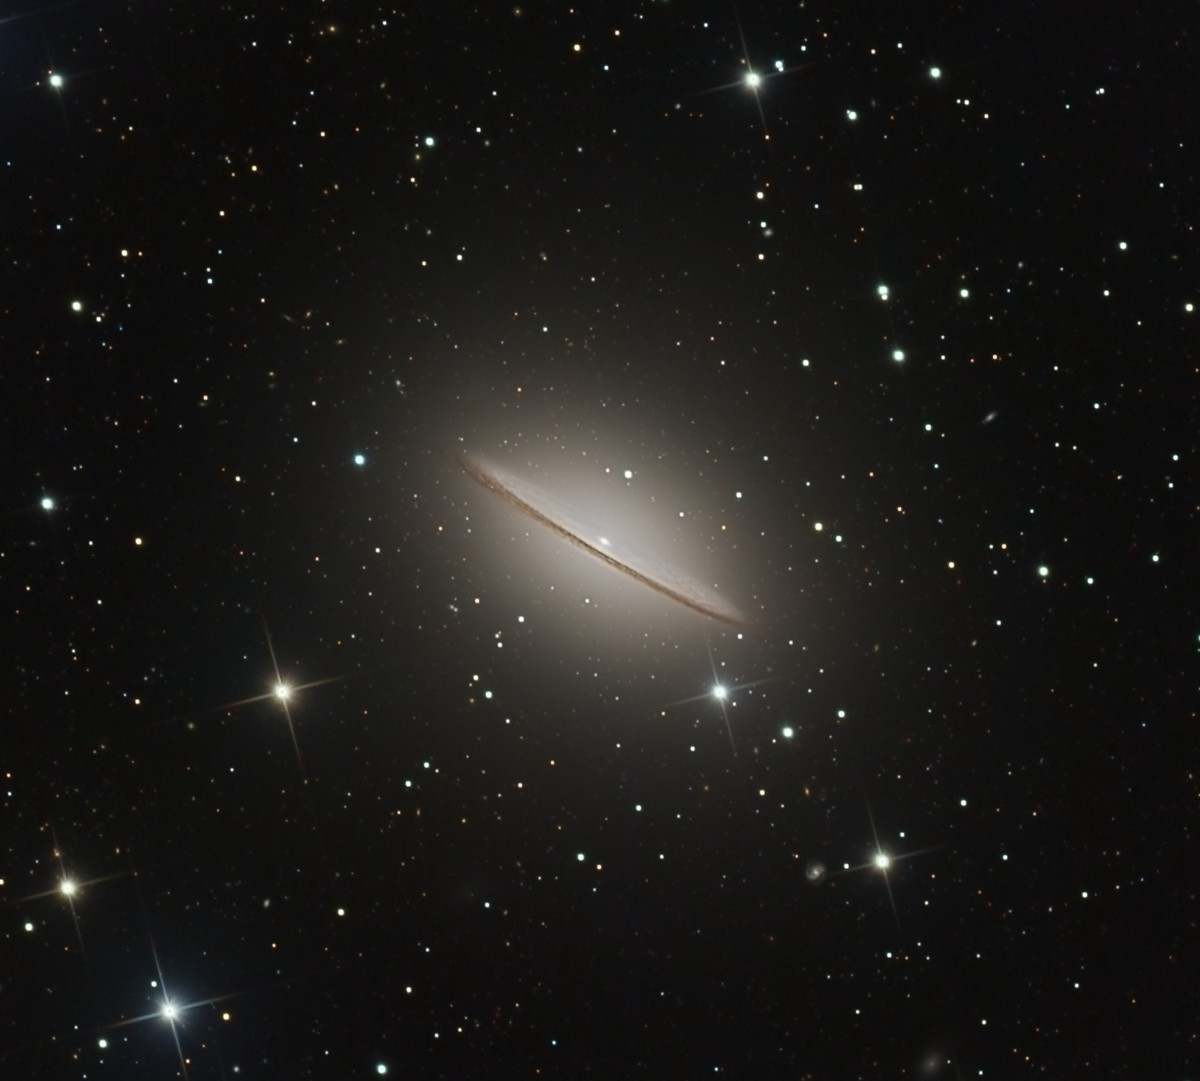 m104_apr_2014_rcos_sso_ids_crop